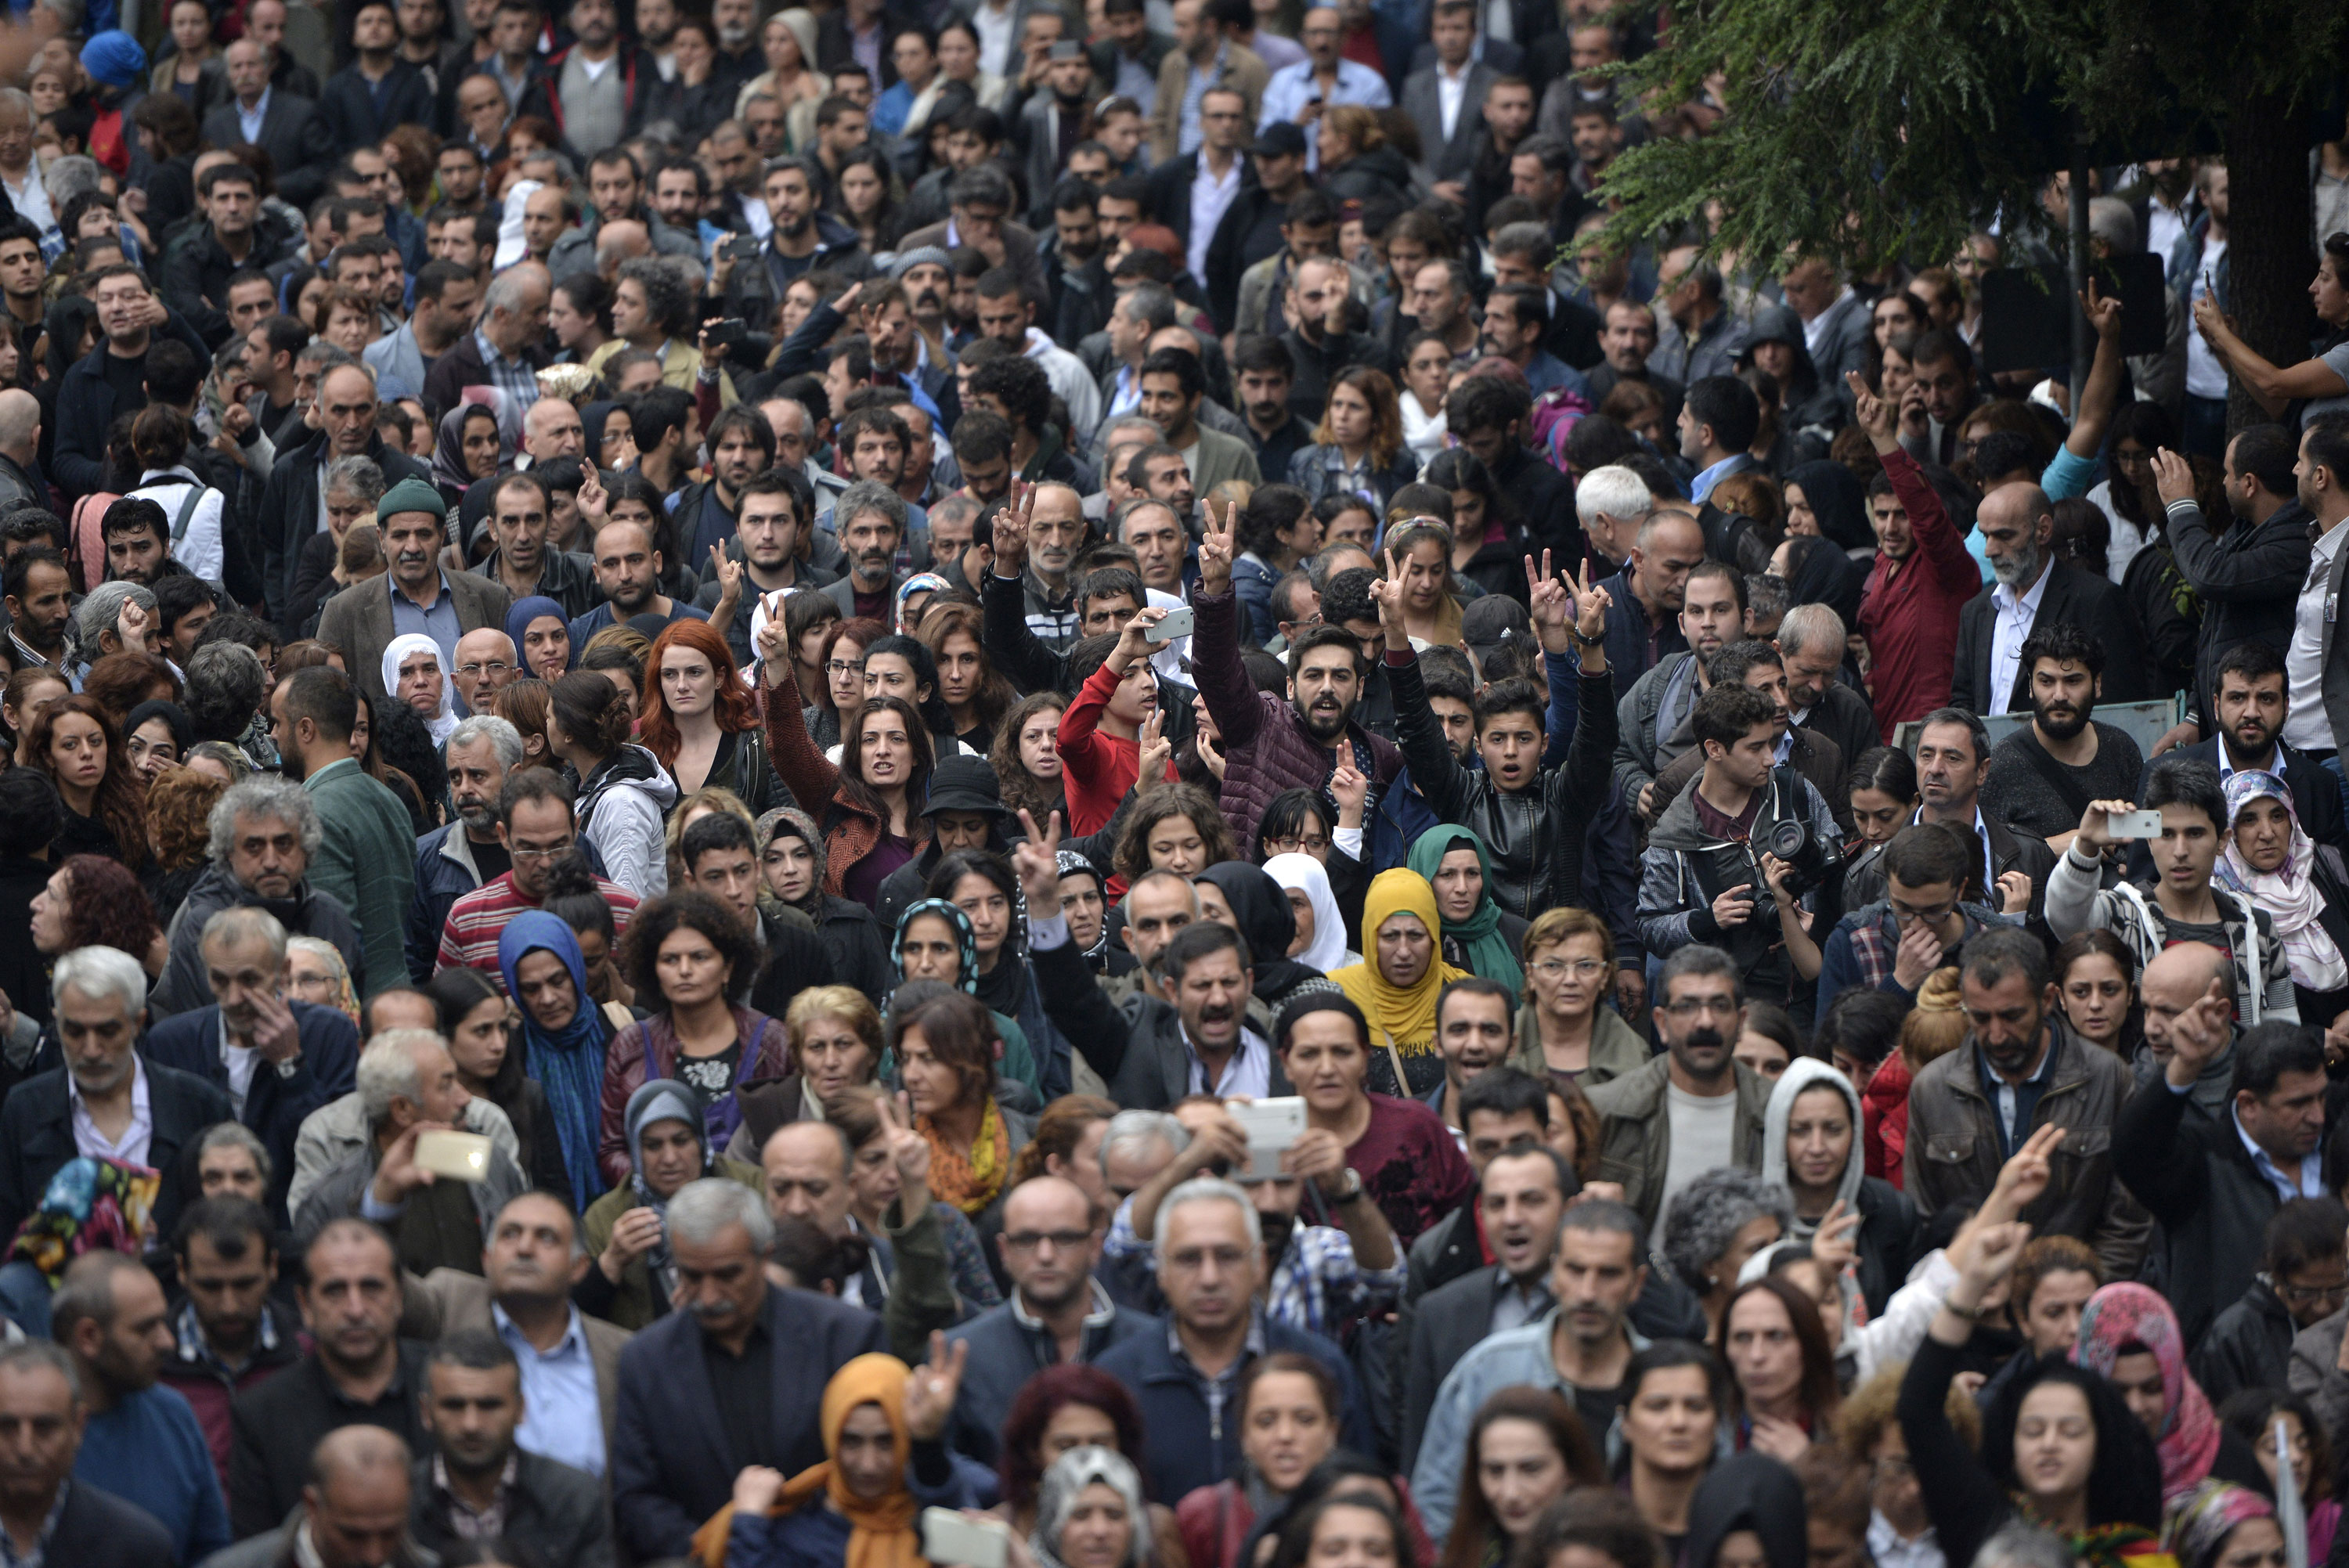 Hundreds of mourners gather to remember the 95 people killed in twin blasts at a peace rally on Saturday, the worst attack in Turkey's modern history. [Deniz/EPA]